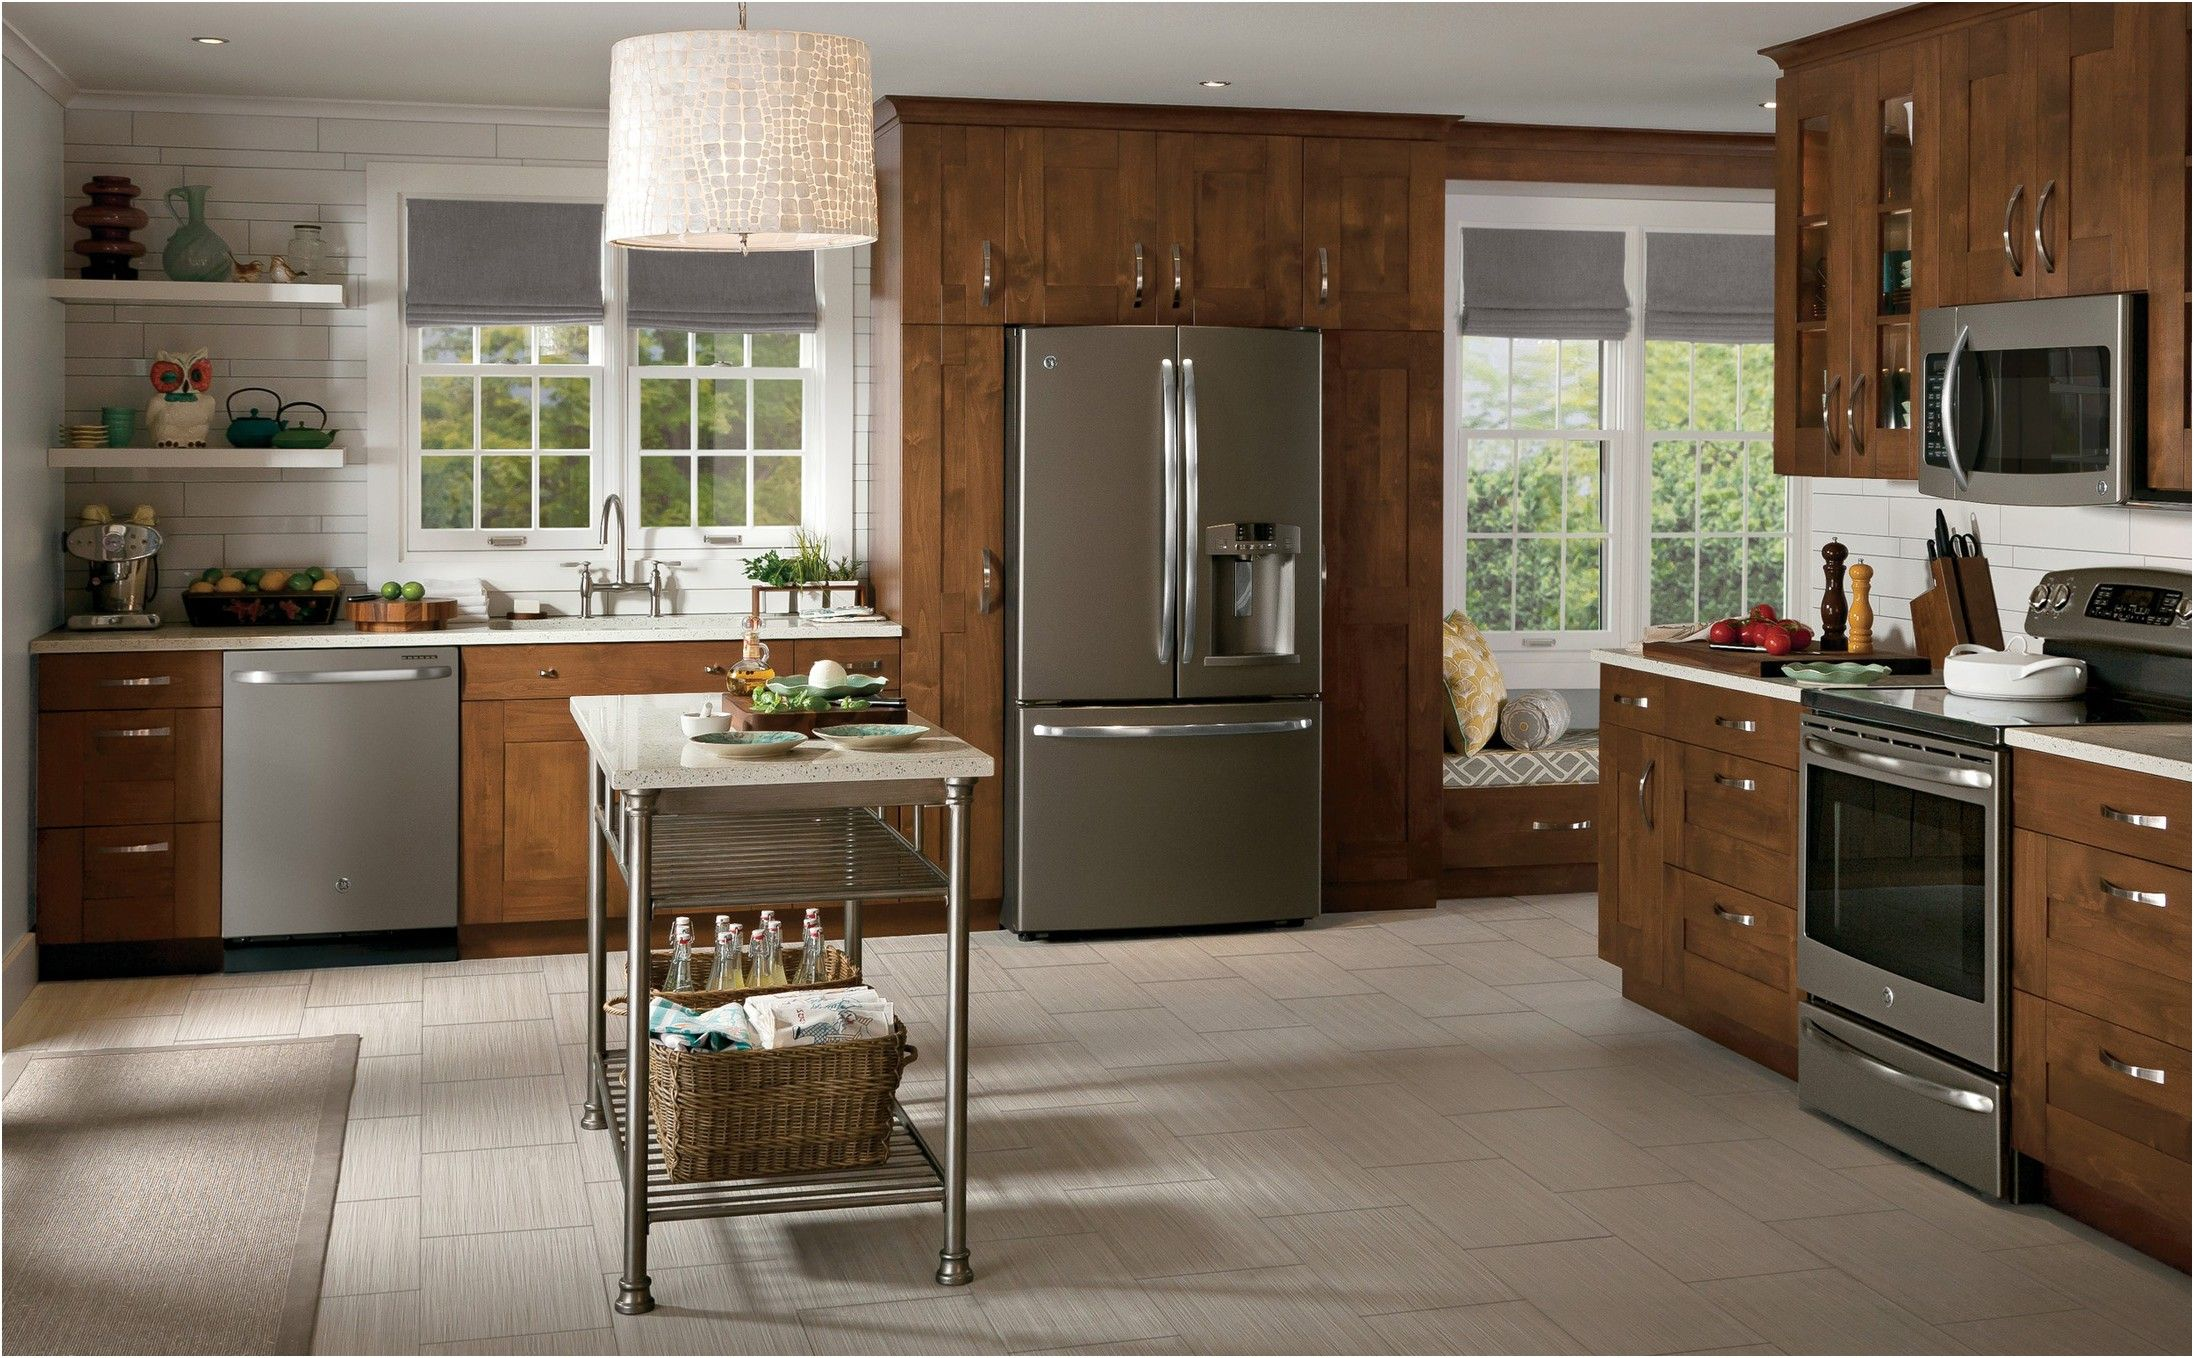 slate country kitchen photo design ge appliances from slate kitchen appliances on kitchen remodel appliances id=35352